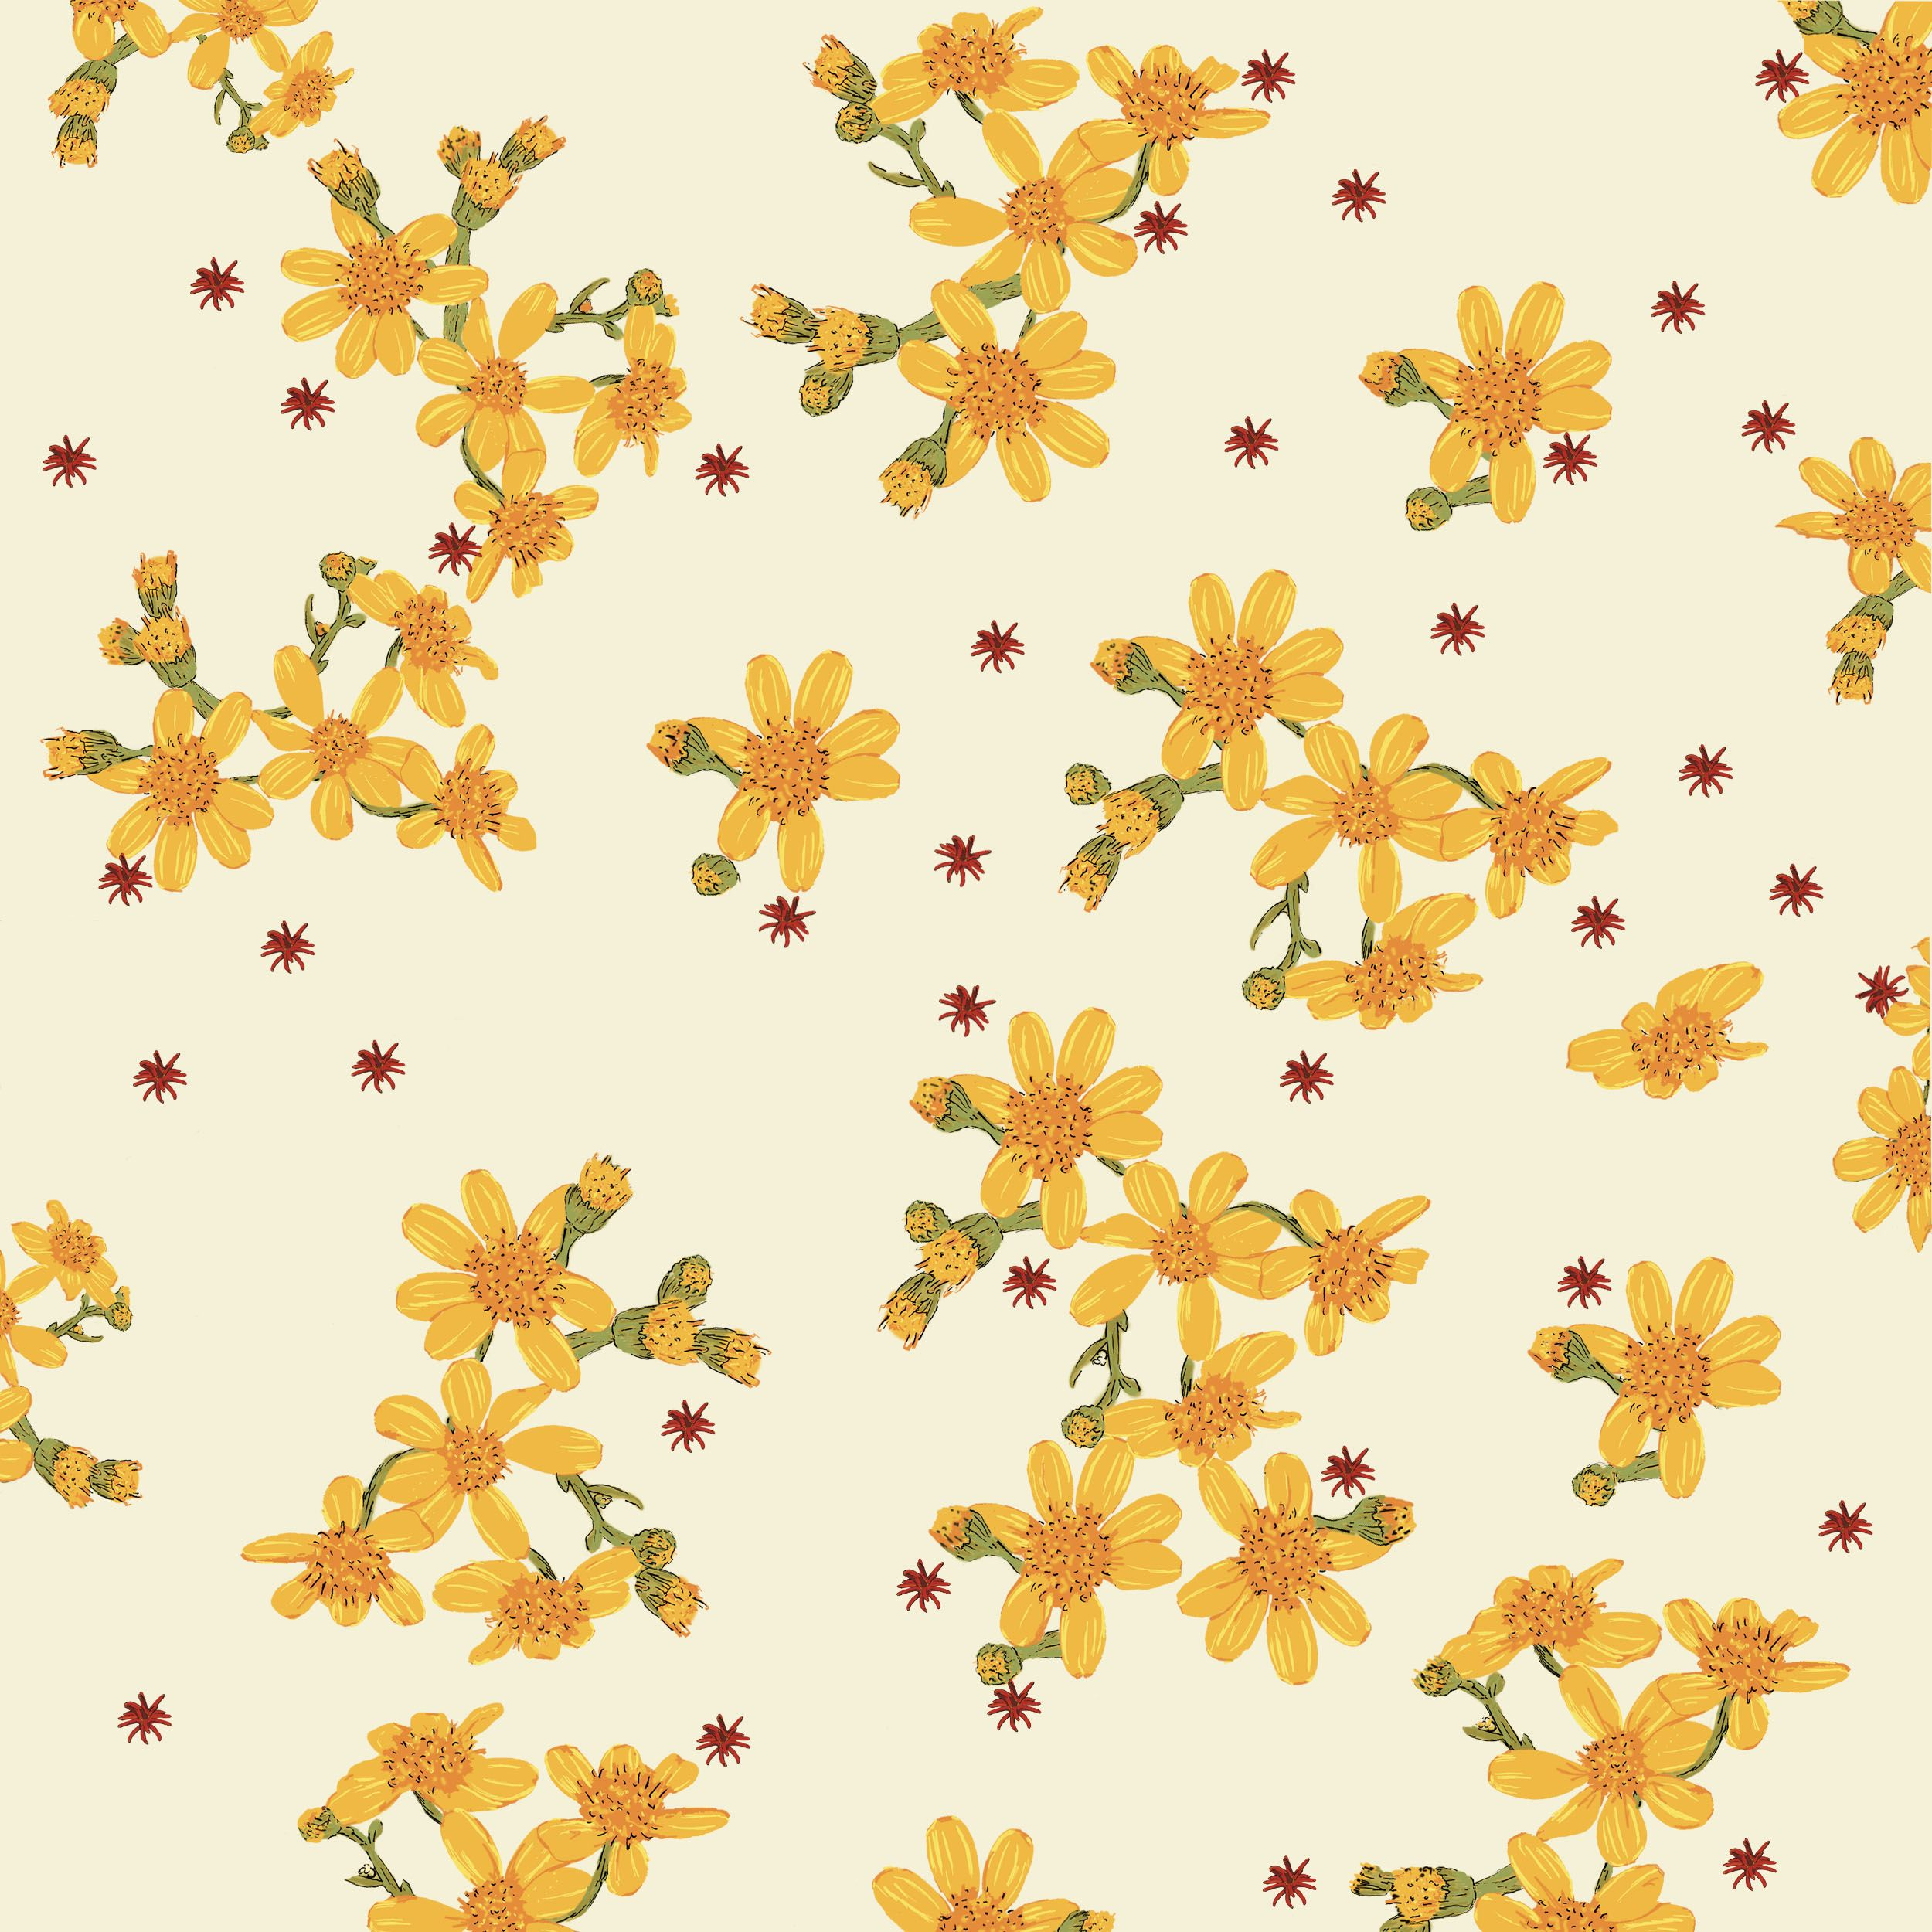 Yellow Flowers Scattered On A Light Yellow Bac Flower Drawings